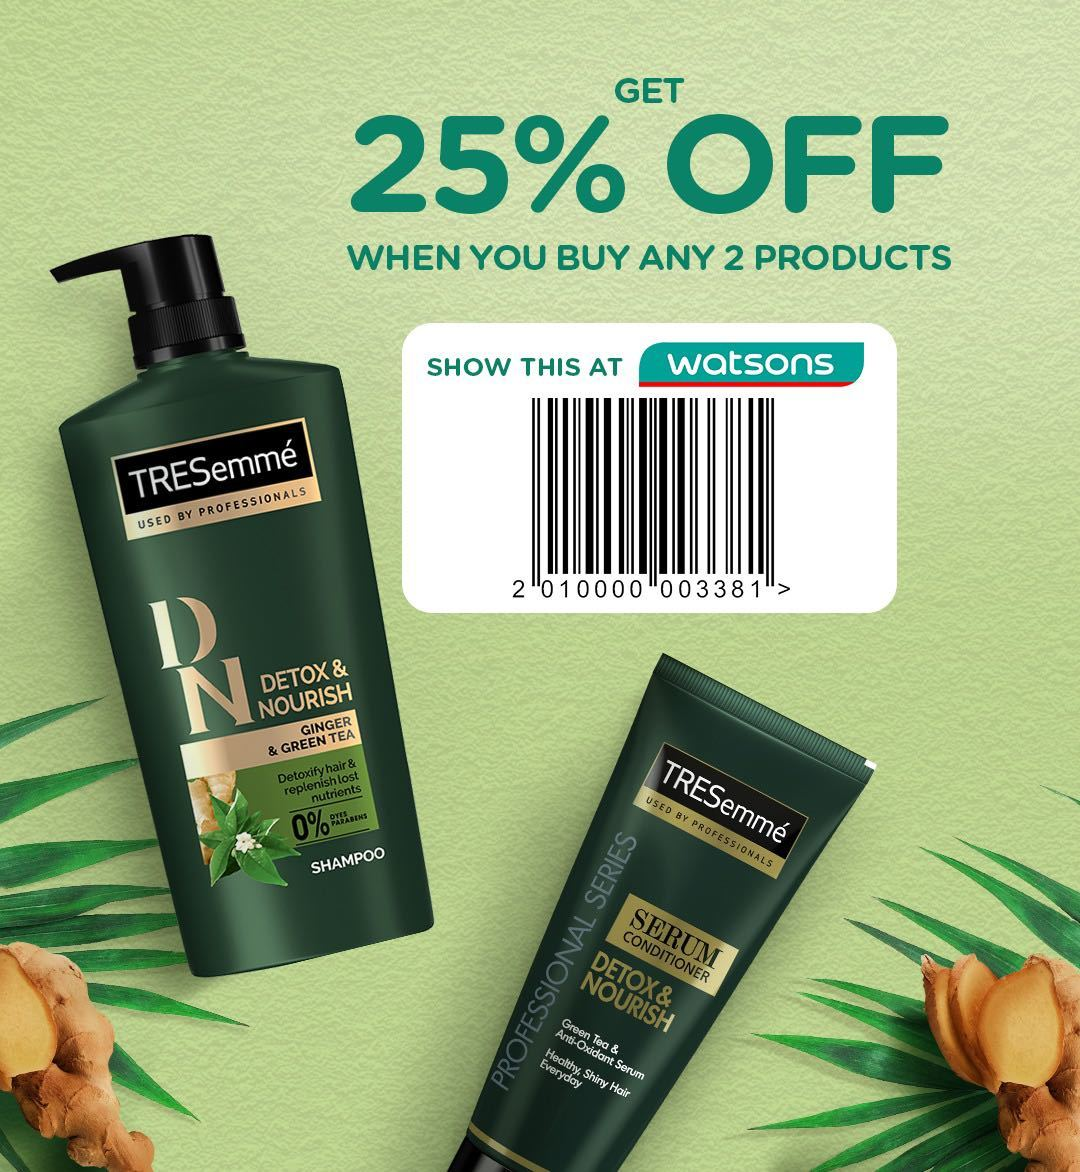 All Things Hair Summer Sale: Watsons Coupon for TRESemme